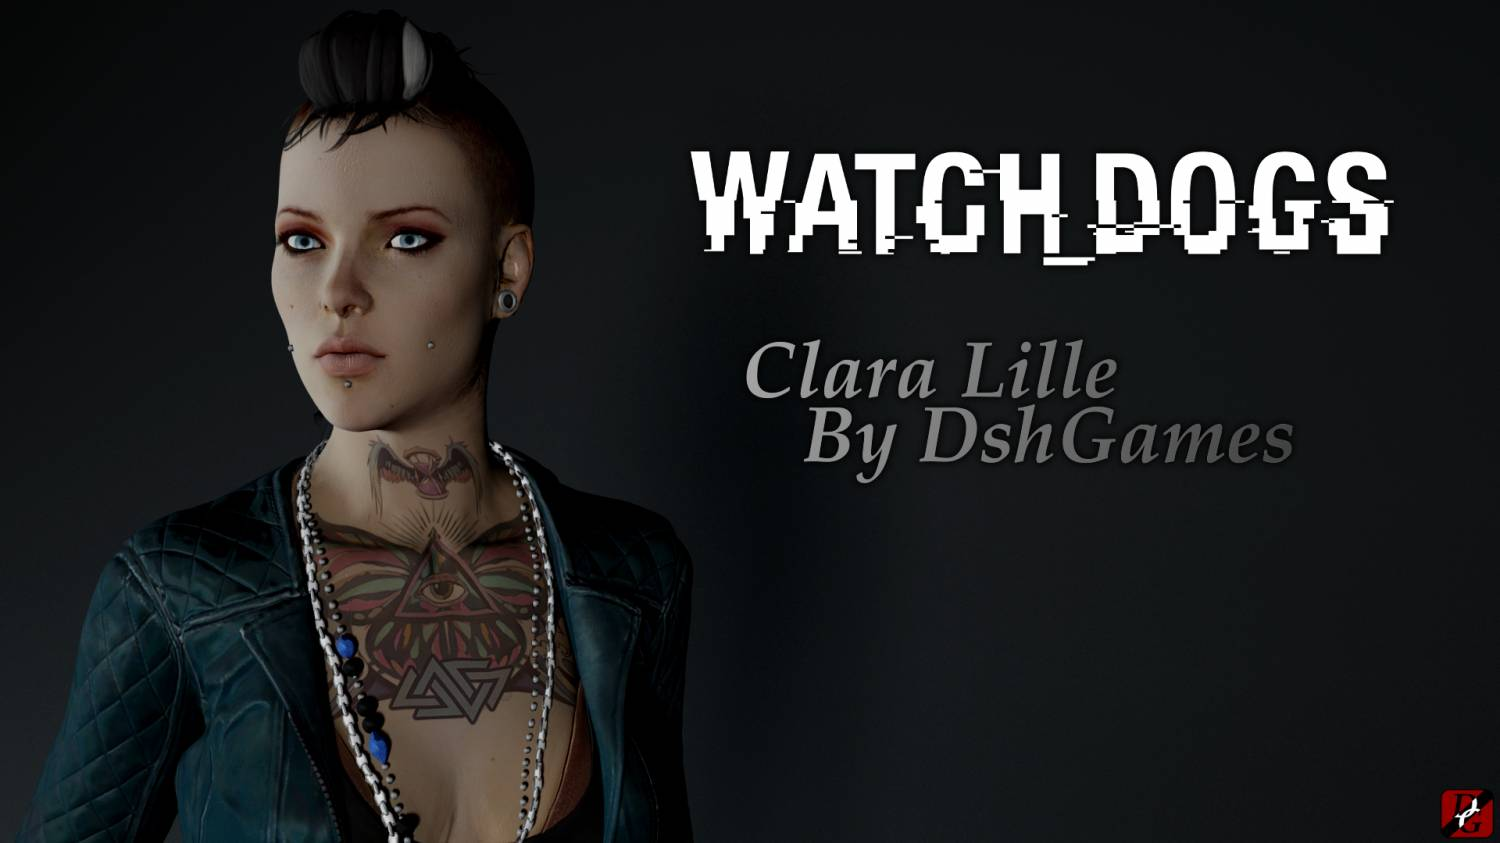 watch dogs Clara Lille gta